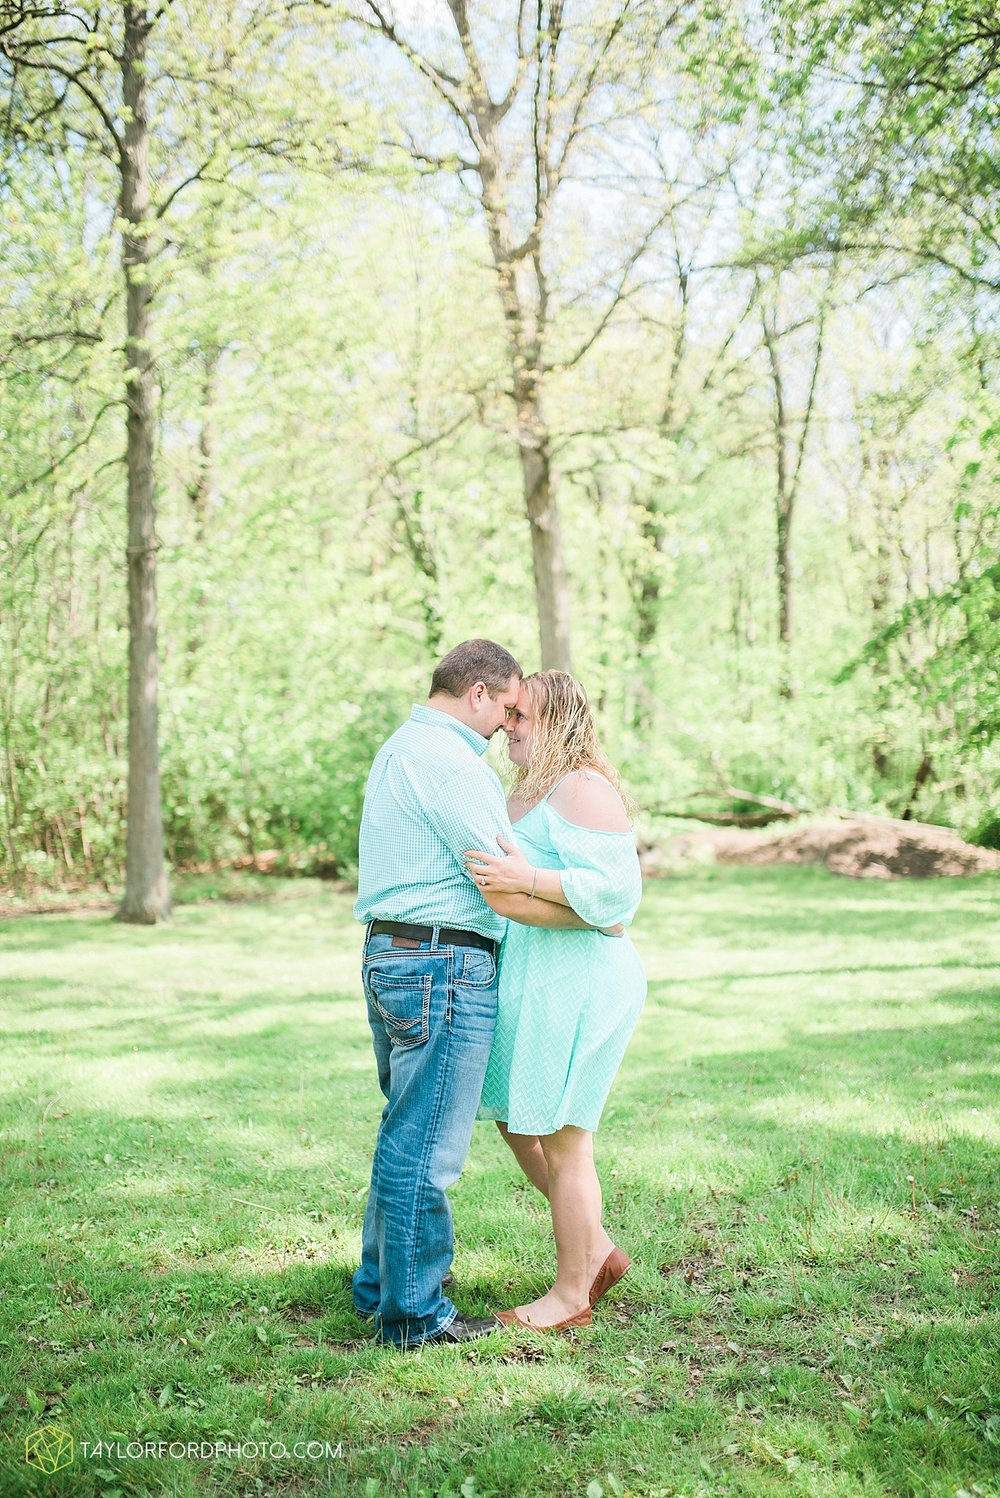 van-wert-lima-northwest-ohio-engagement-wedding-photographer-taylor-ford-photography-willow-bend-golf-course_1827.jpg